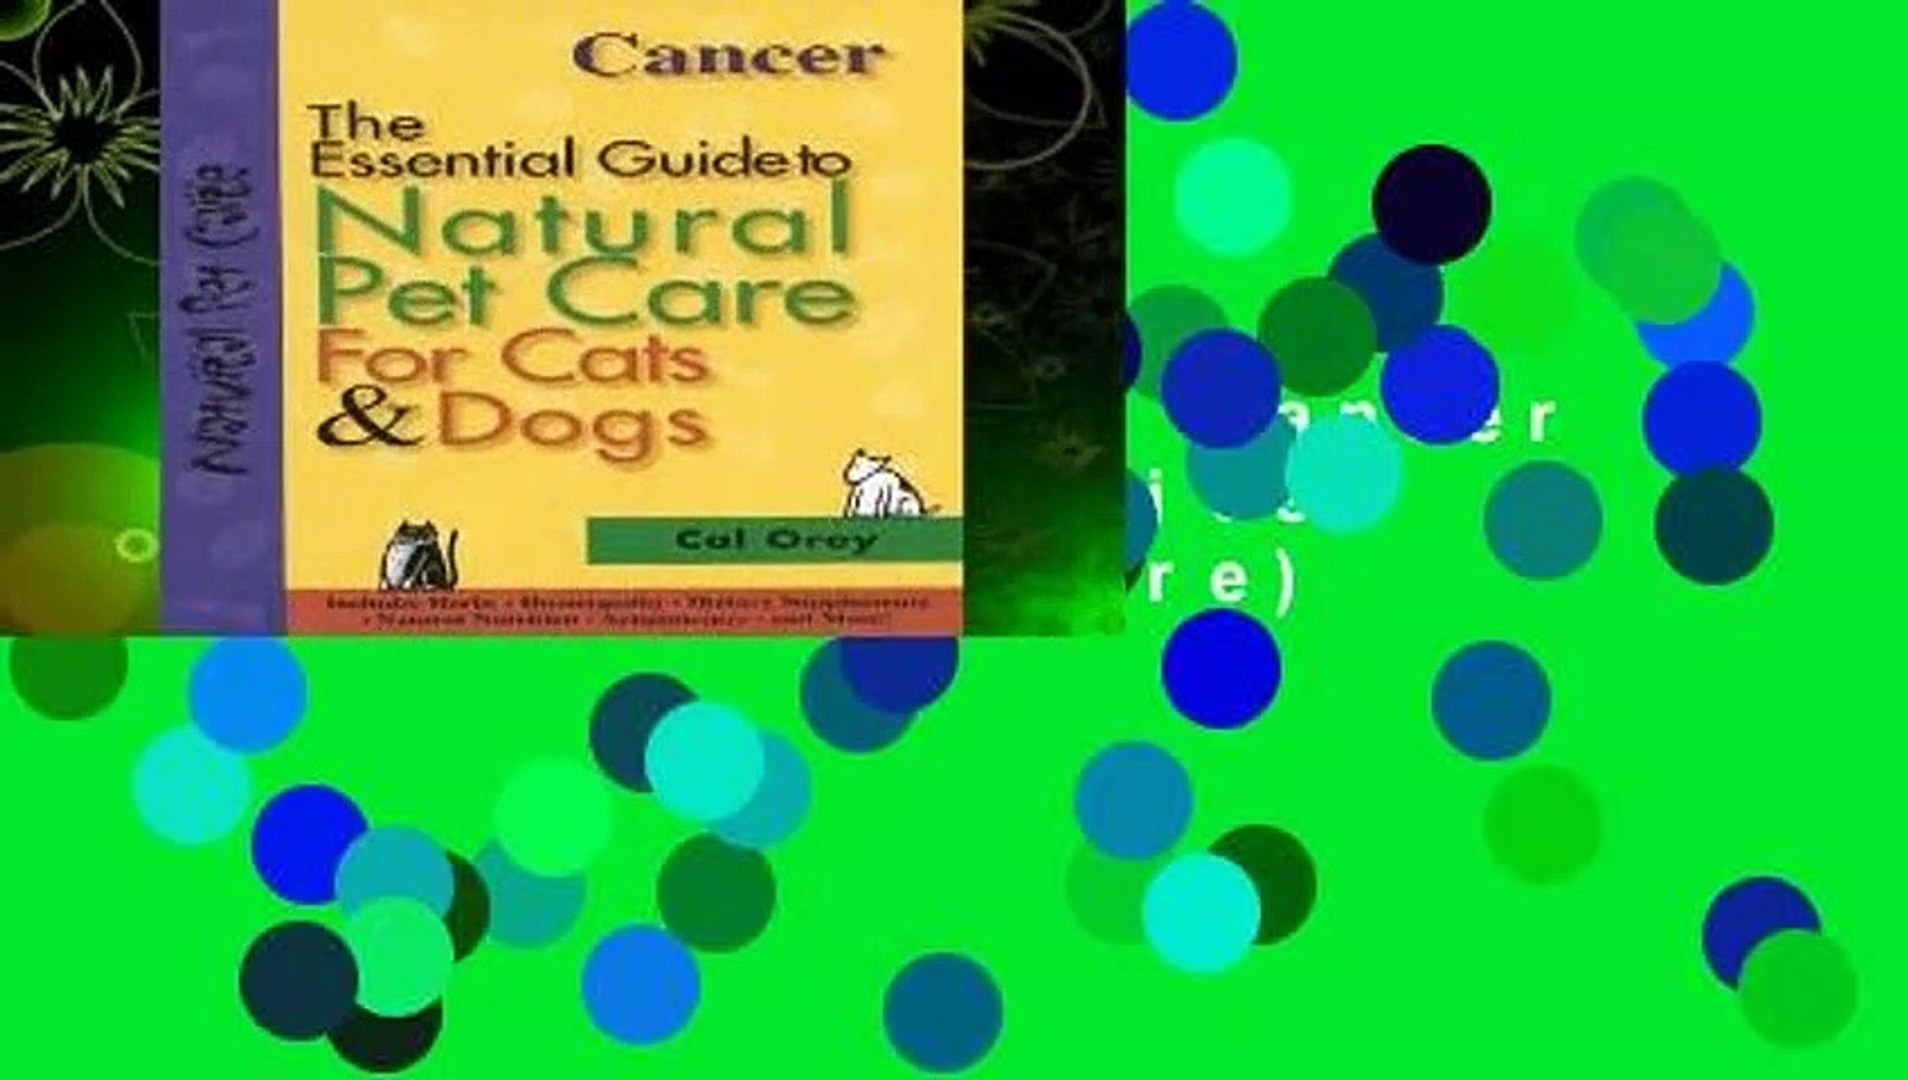 Essential Guide to Natural Pet Care: Cancer (The essential guide to natural pet care)